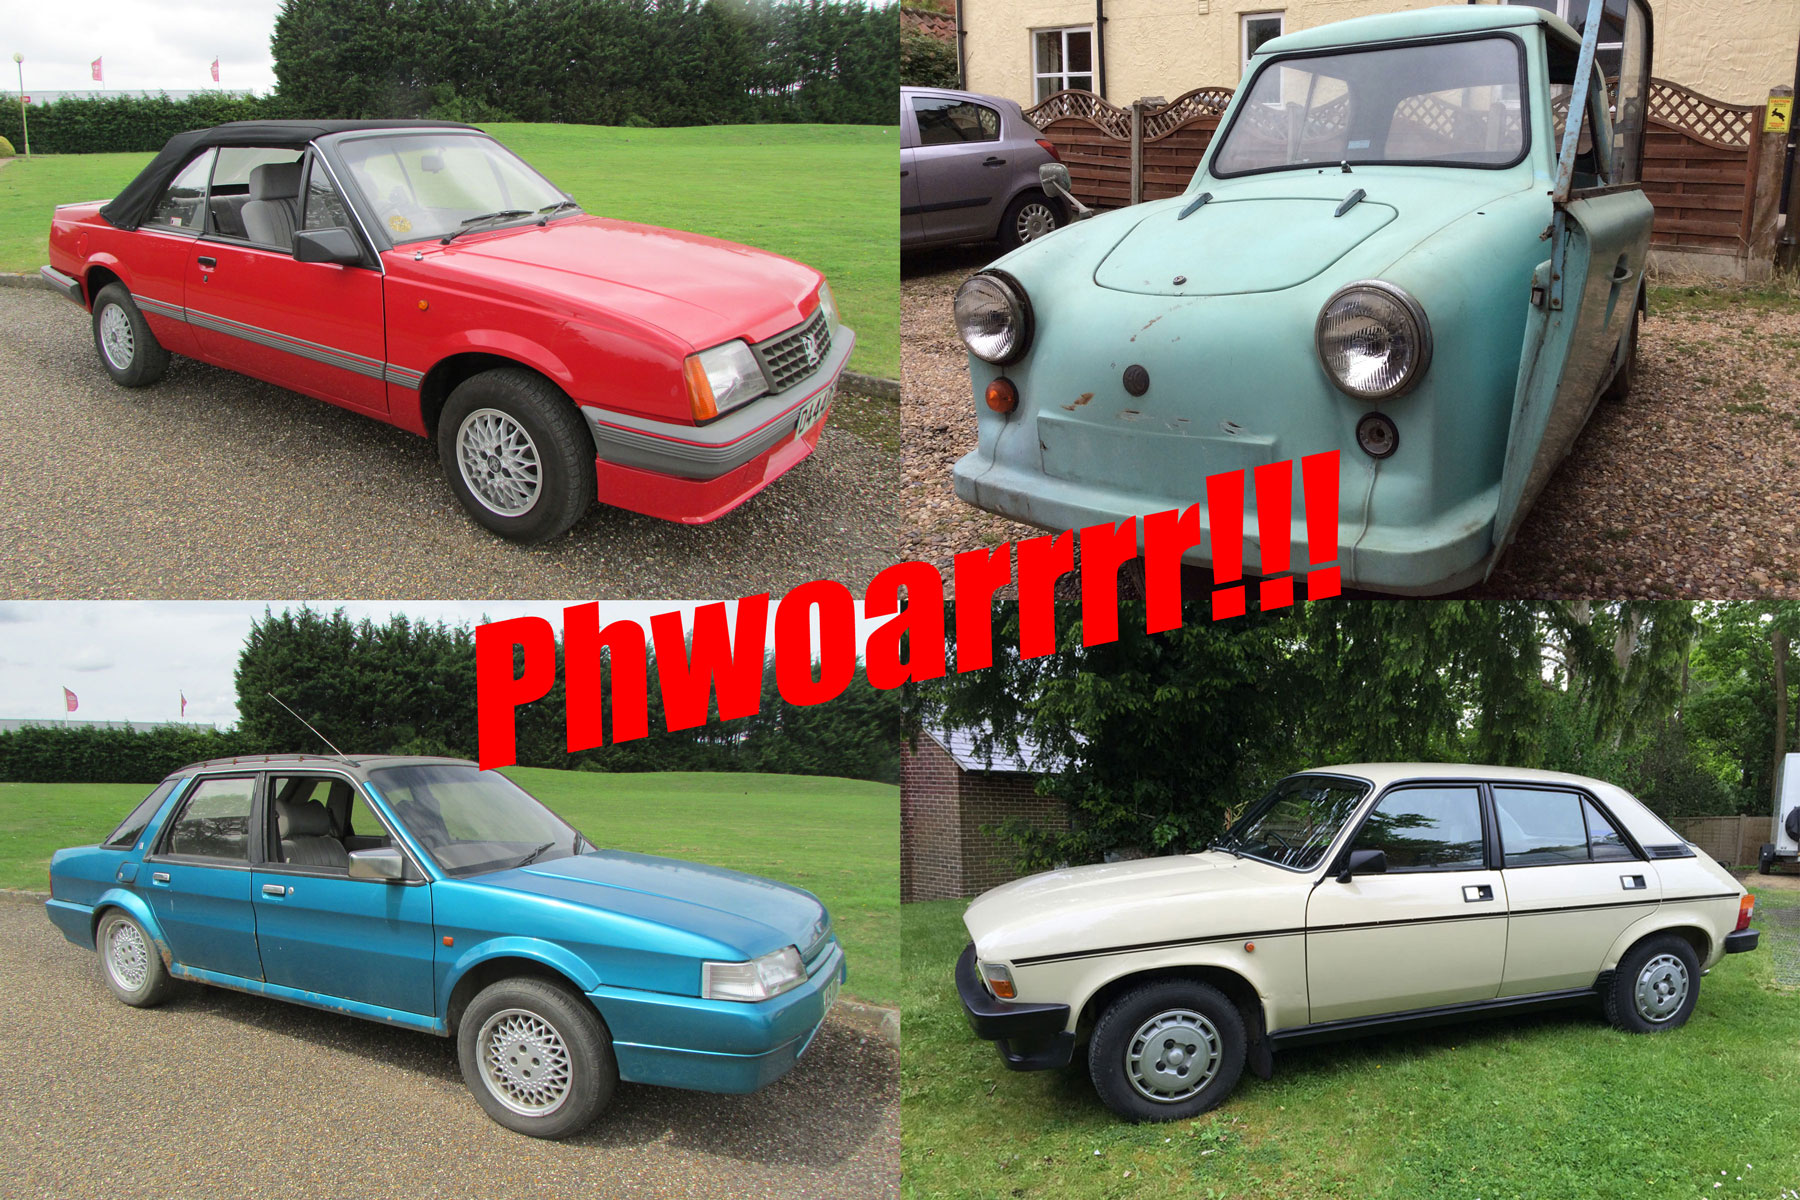 Anglia Car Auctions: 10 cars we shouldn't want (but do)